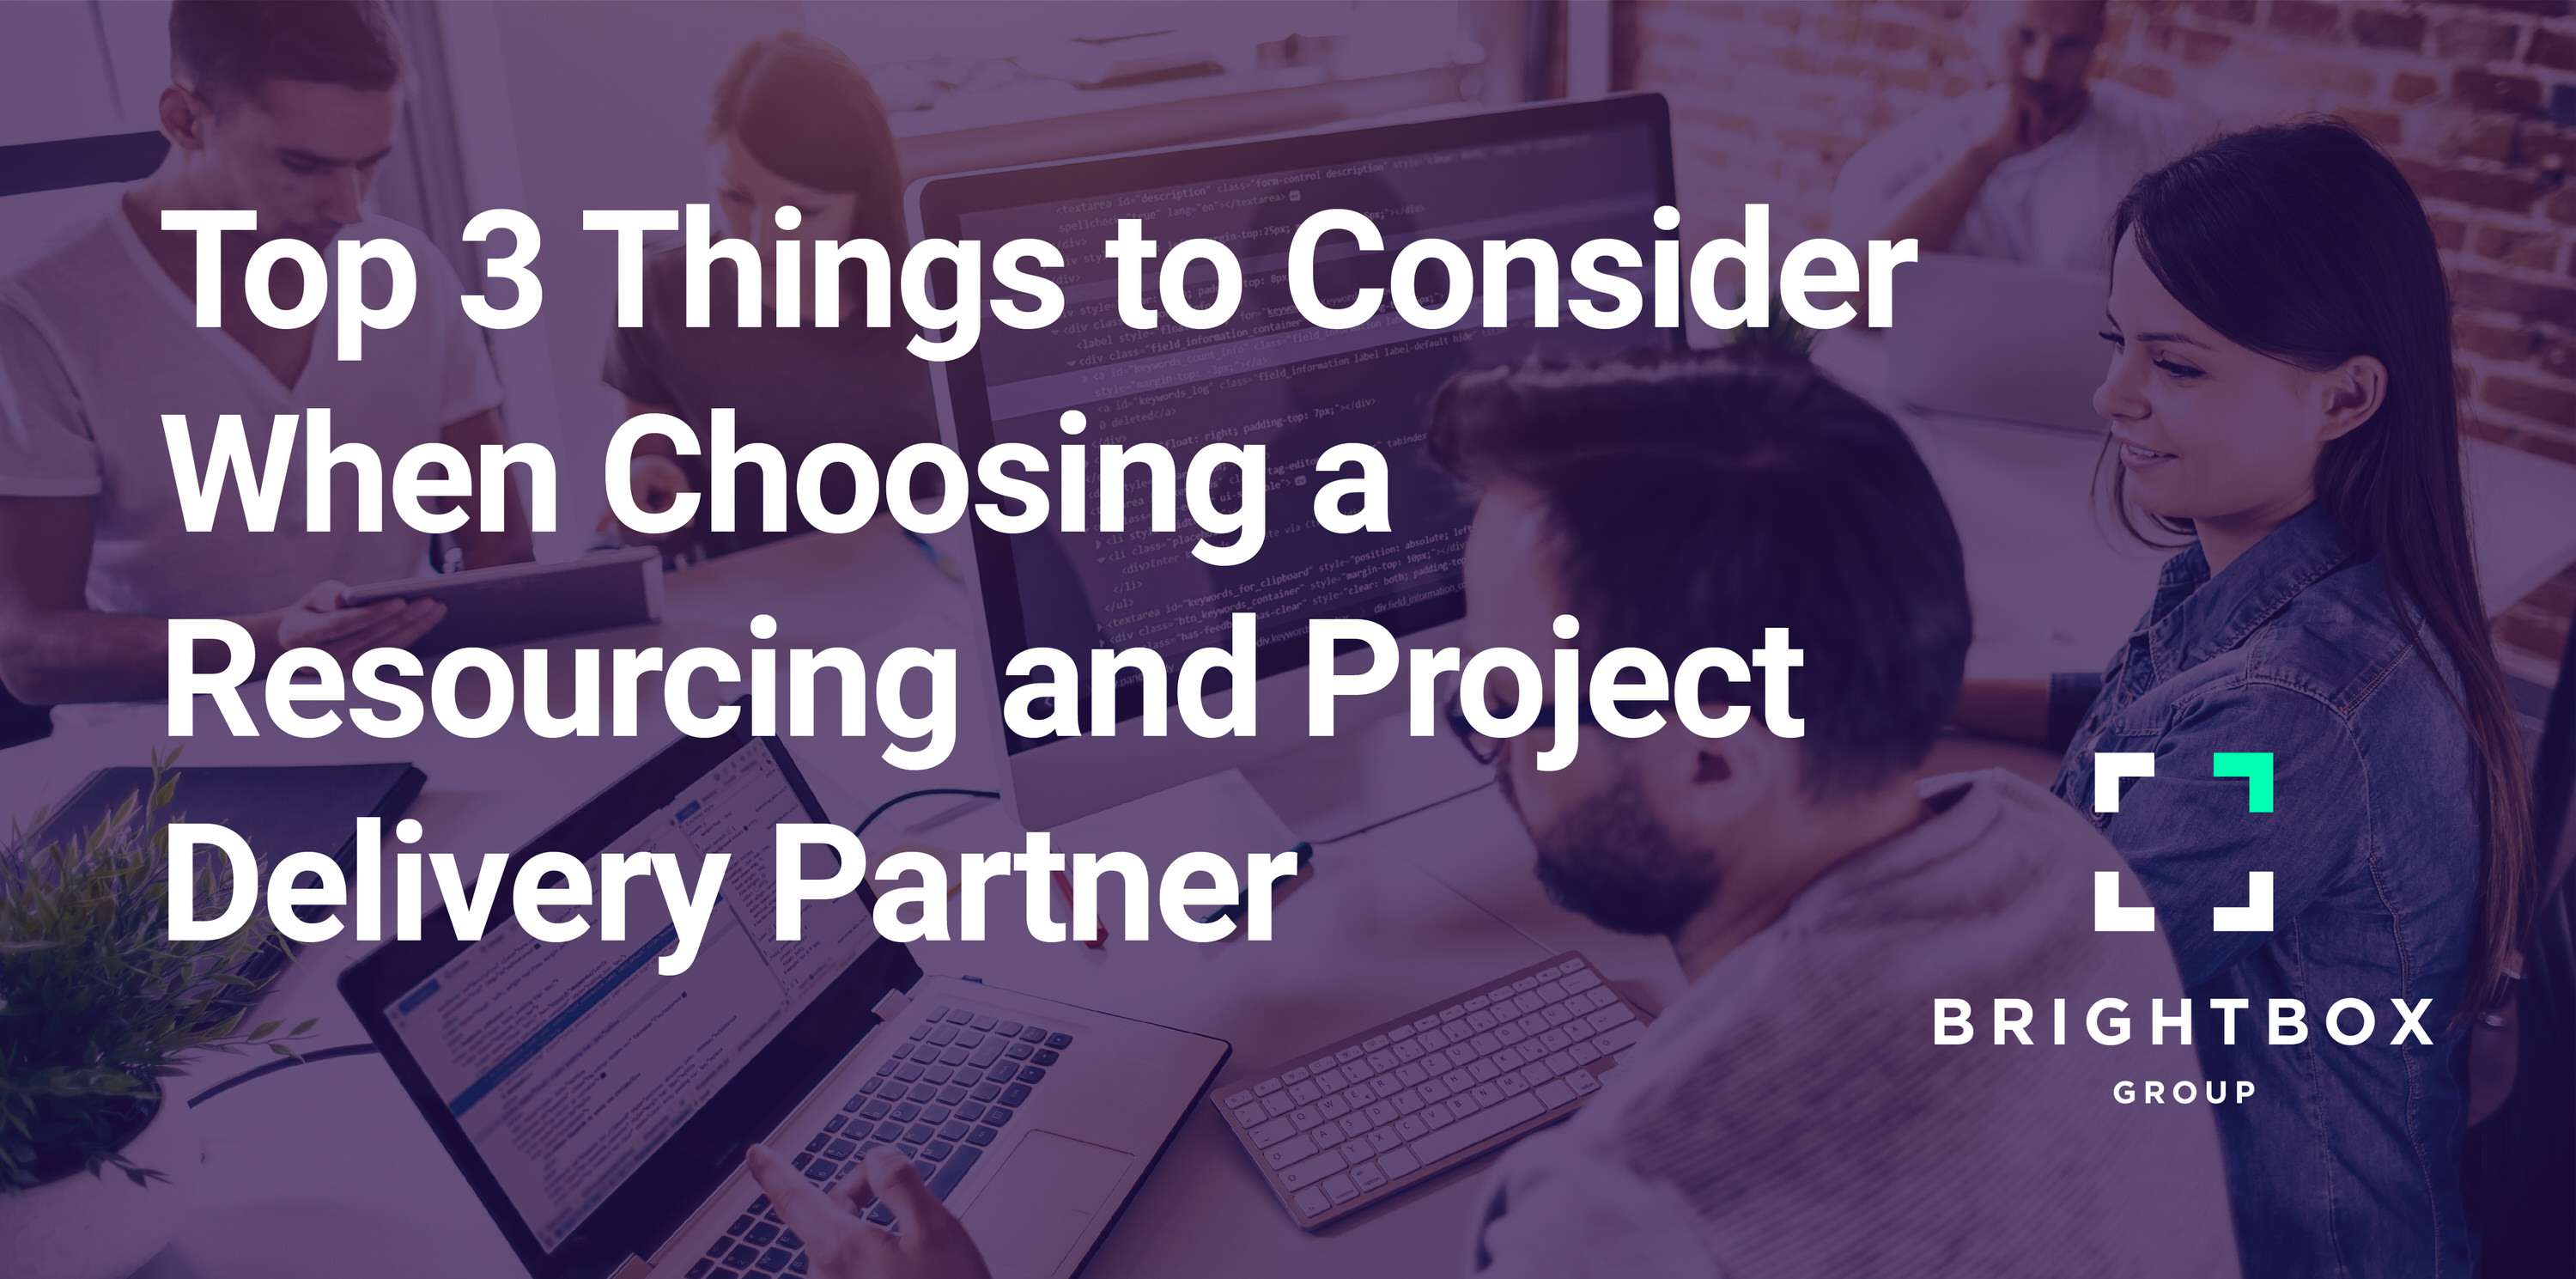 Top 3 things to consider when choosing a resourcing and project delivery partner